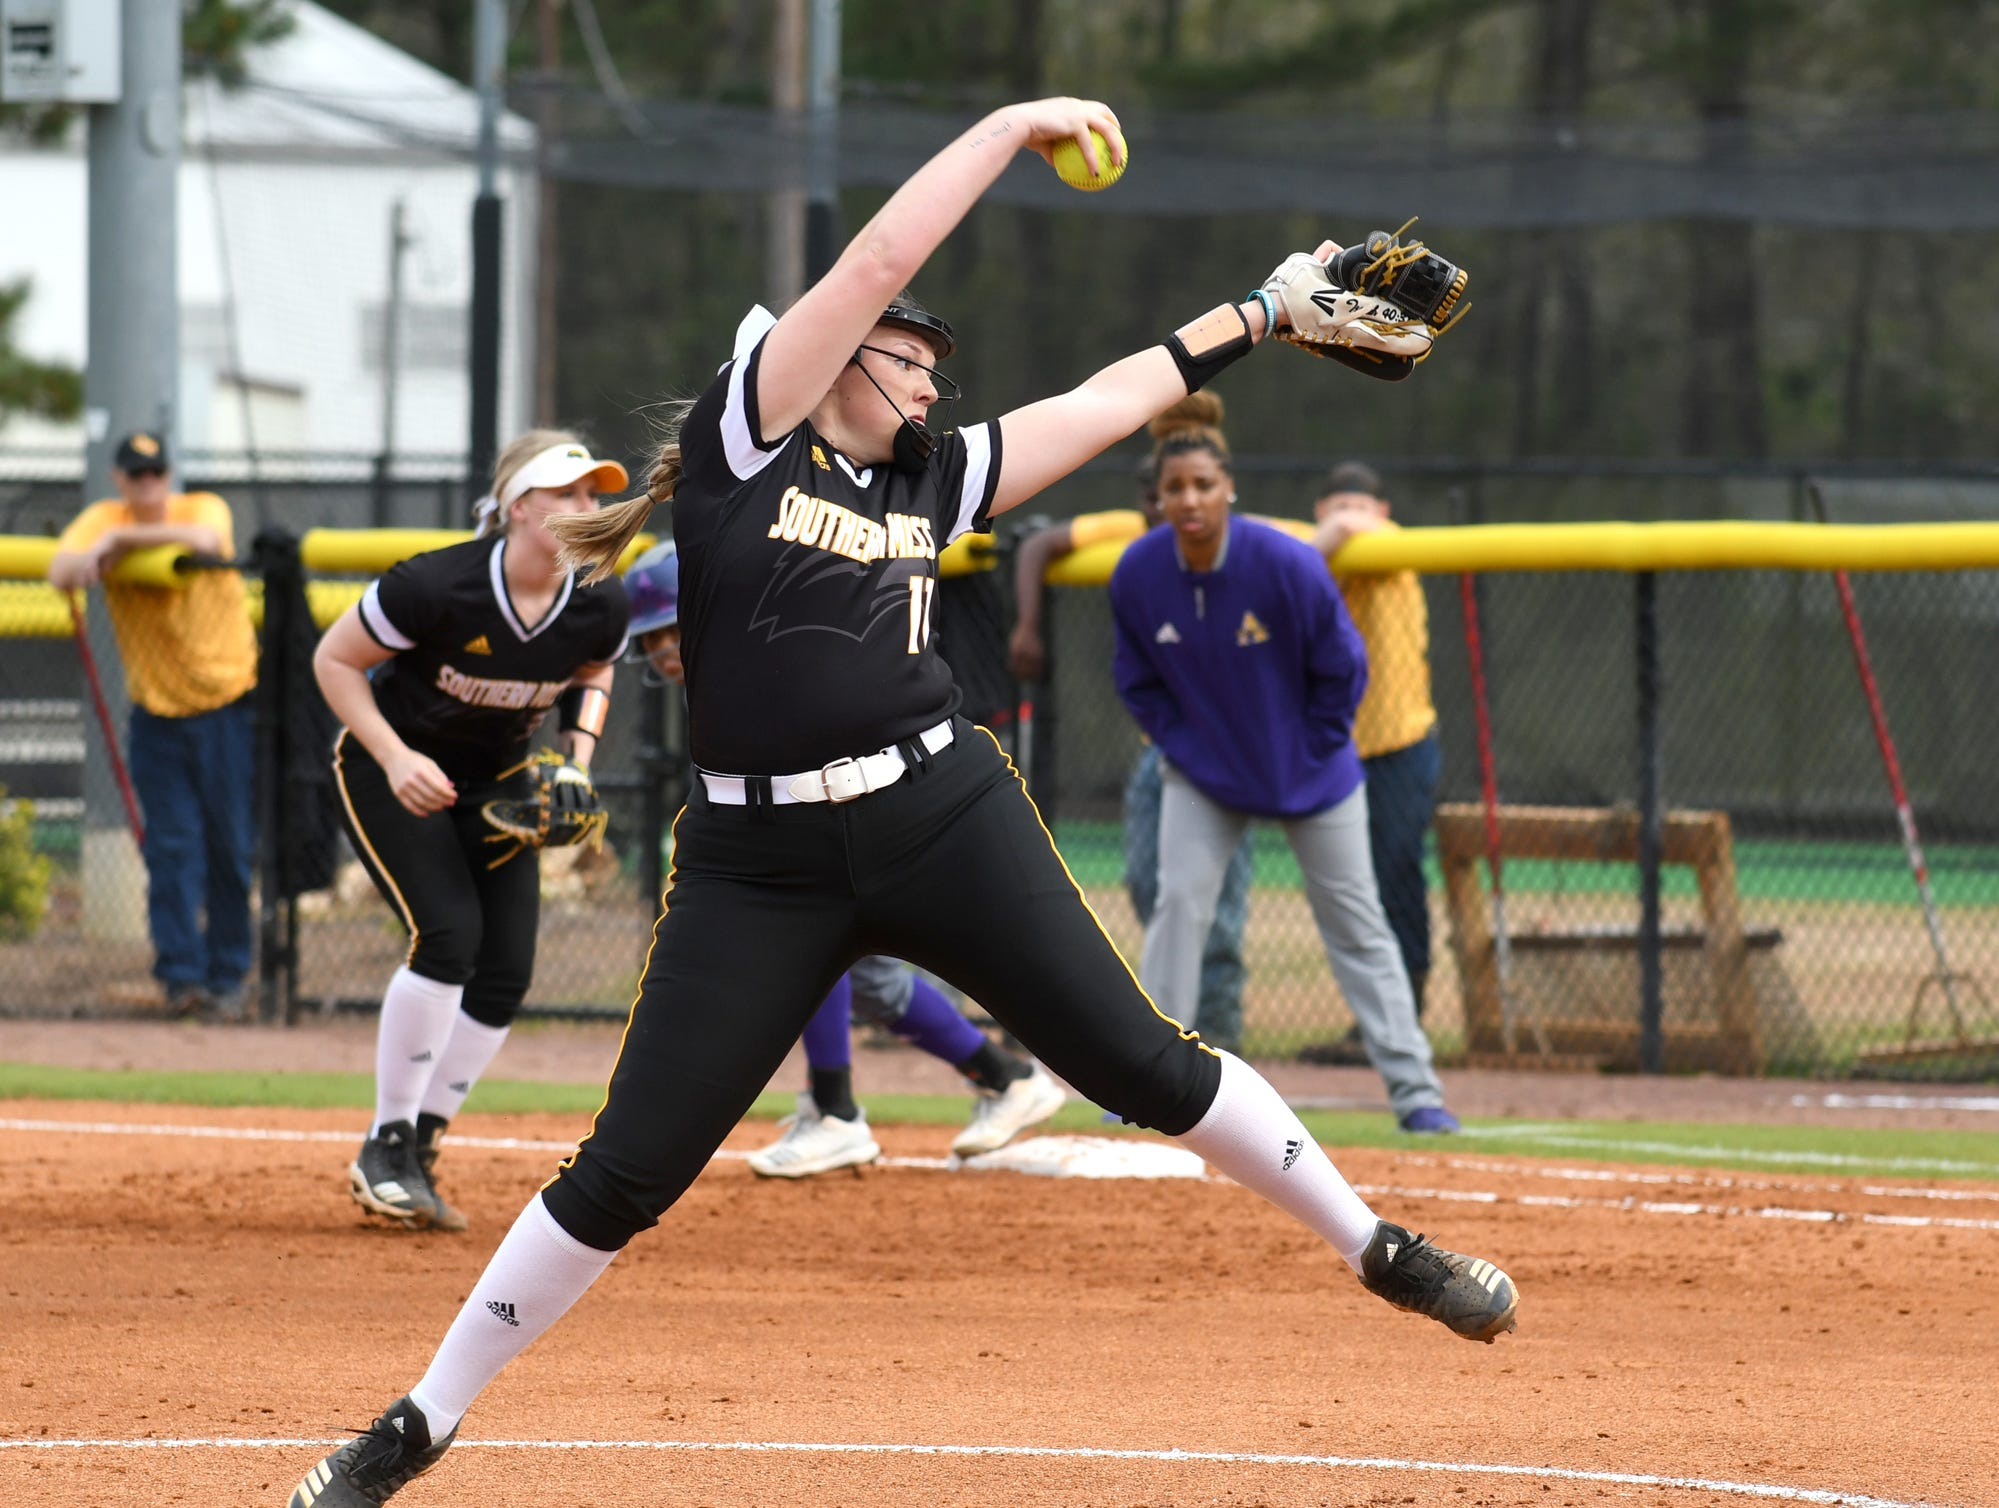 Southern Miss pitcher Kaylan Ladner throws the ball in a game against Alcorn on Tuesday, March 12, 2019.